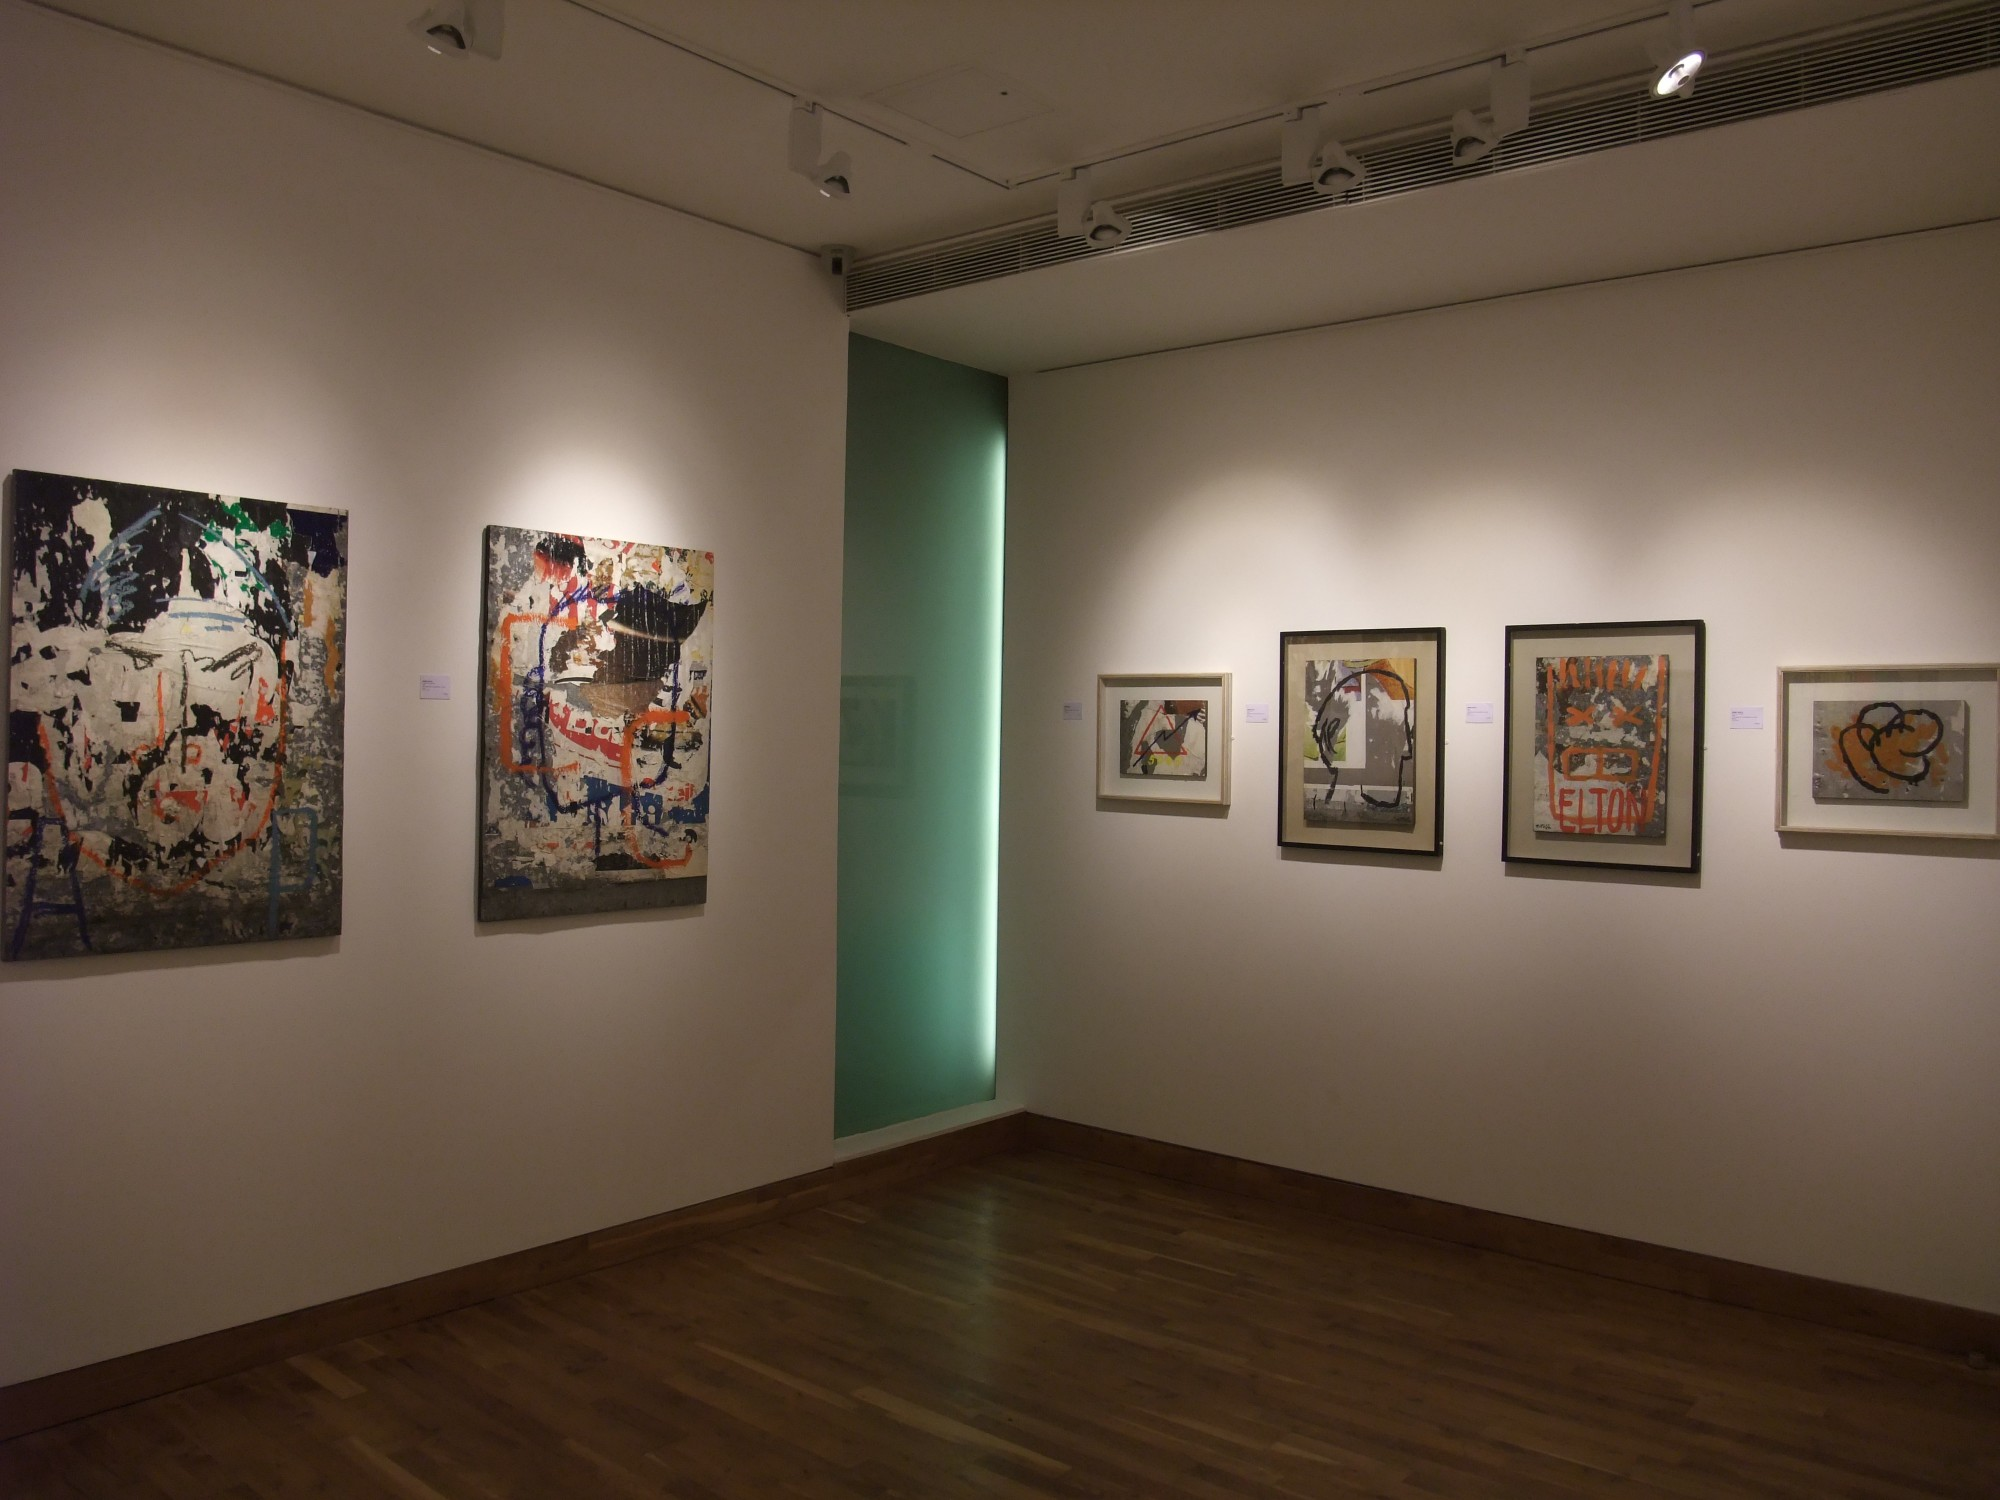 """<span class=""""link fancybox-details-link""""><a href=""""/exhibitions/97/works/image_standalone339/"""">View Detail Page</a></span><p>MIMMO ROTELLA & JACQUES VILLEGLÉ   22 SEP - 24 OCT 2008   Installation View</p>"""